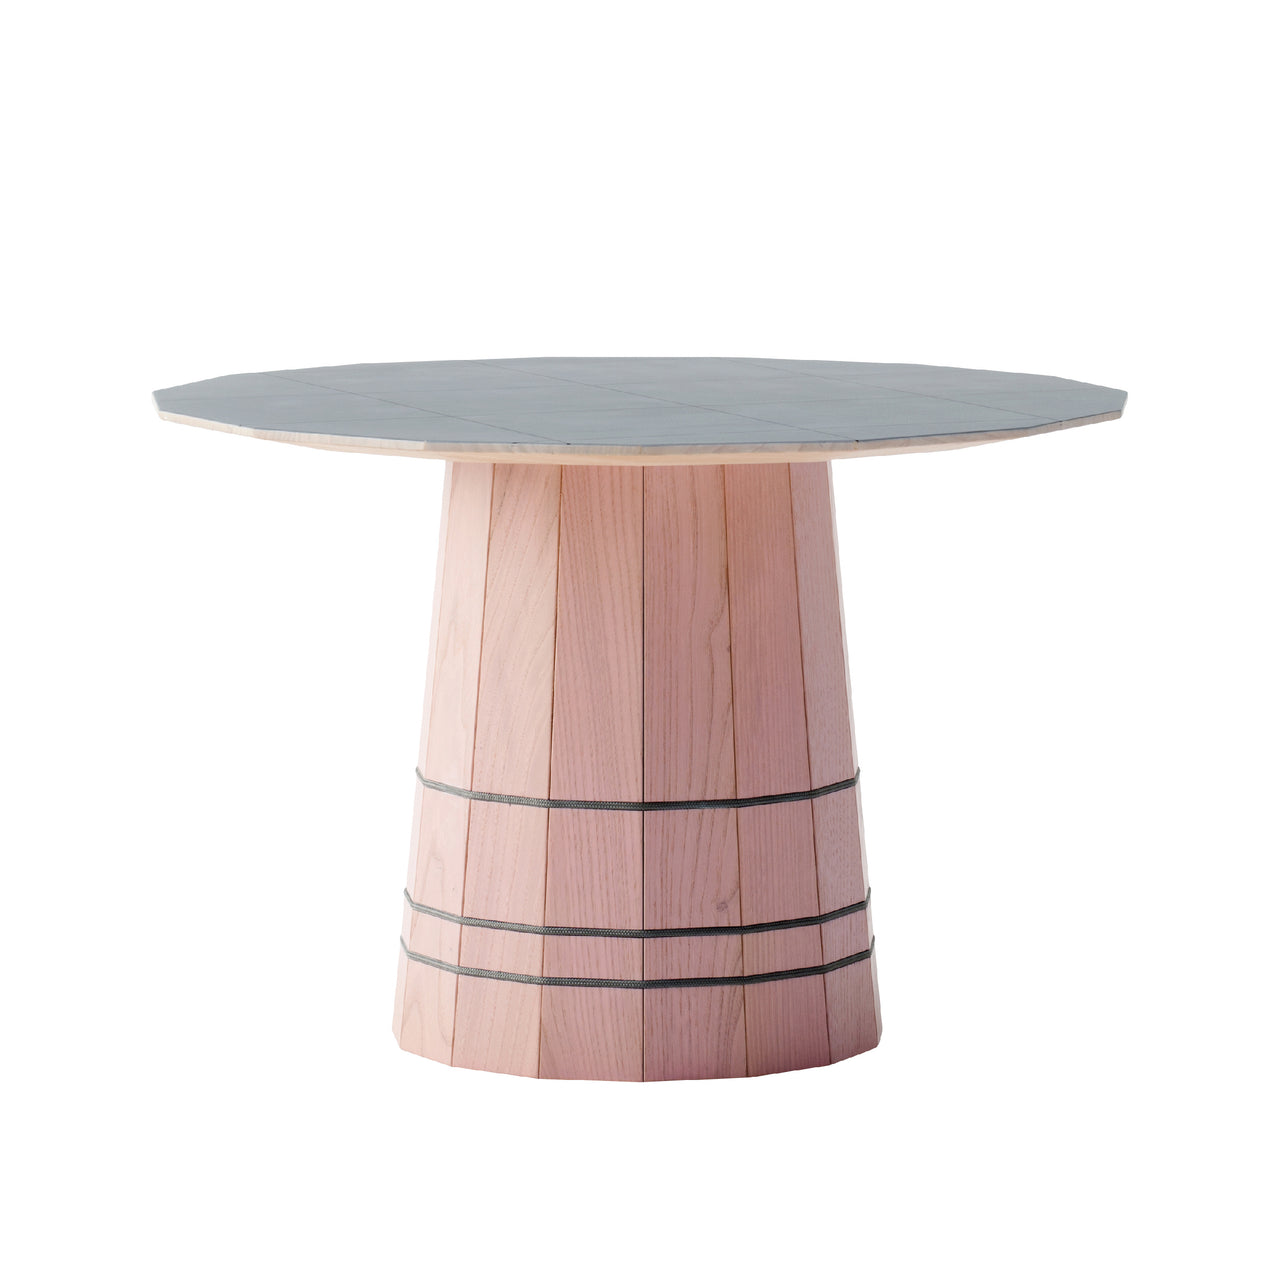 Colour Wood Tables: 600mm + Dark Grid